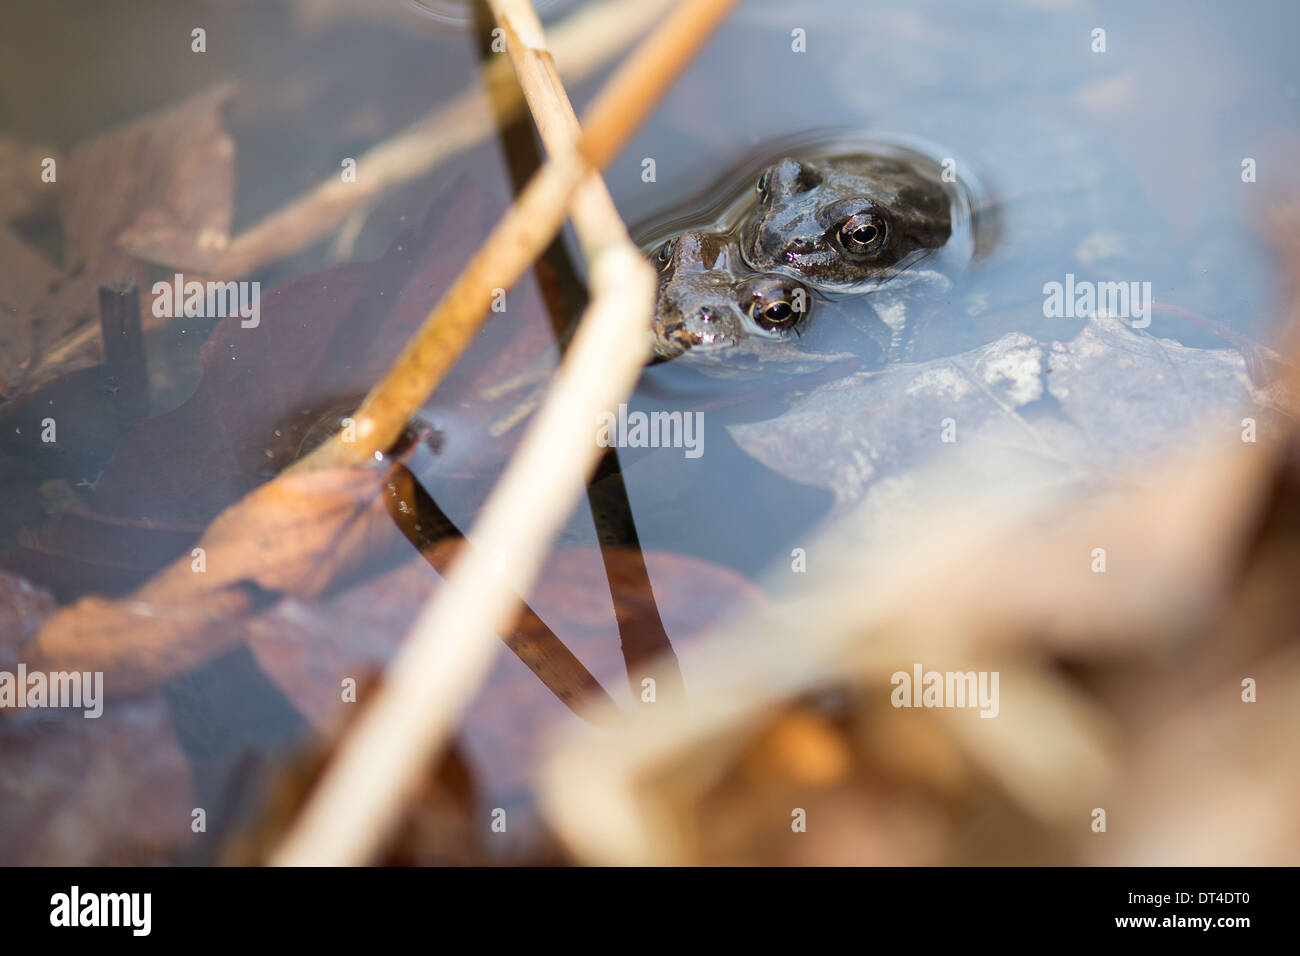 A couple of common frogs, Rana temporaria mating in the water in spring - Stock Image